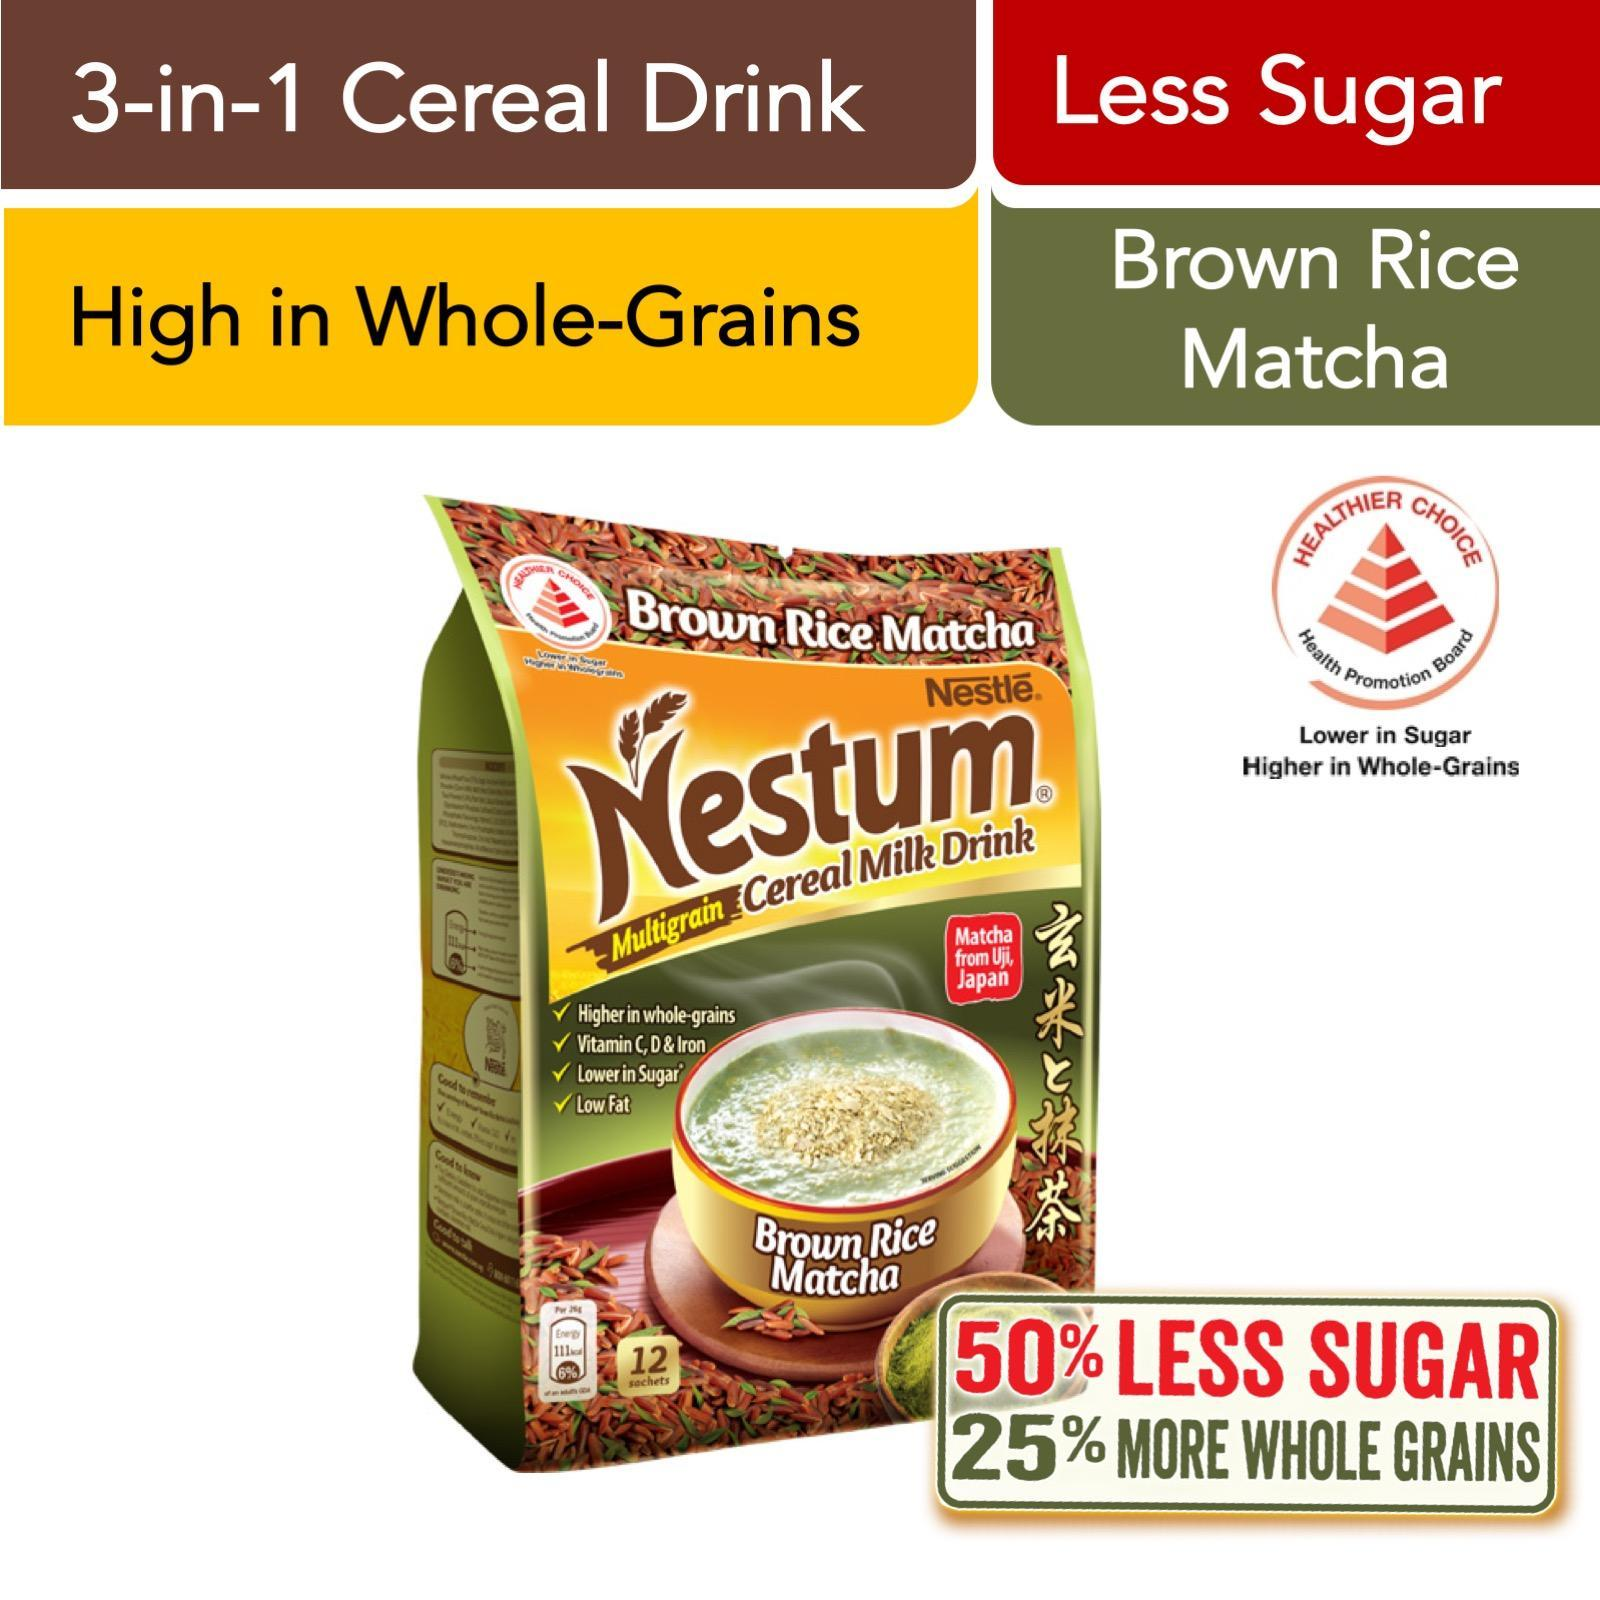 Nestum 3in1 Cereal Drink Brown Rice Matcha 12 X 26g By Redmart.